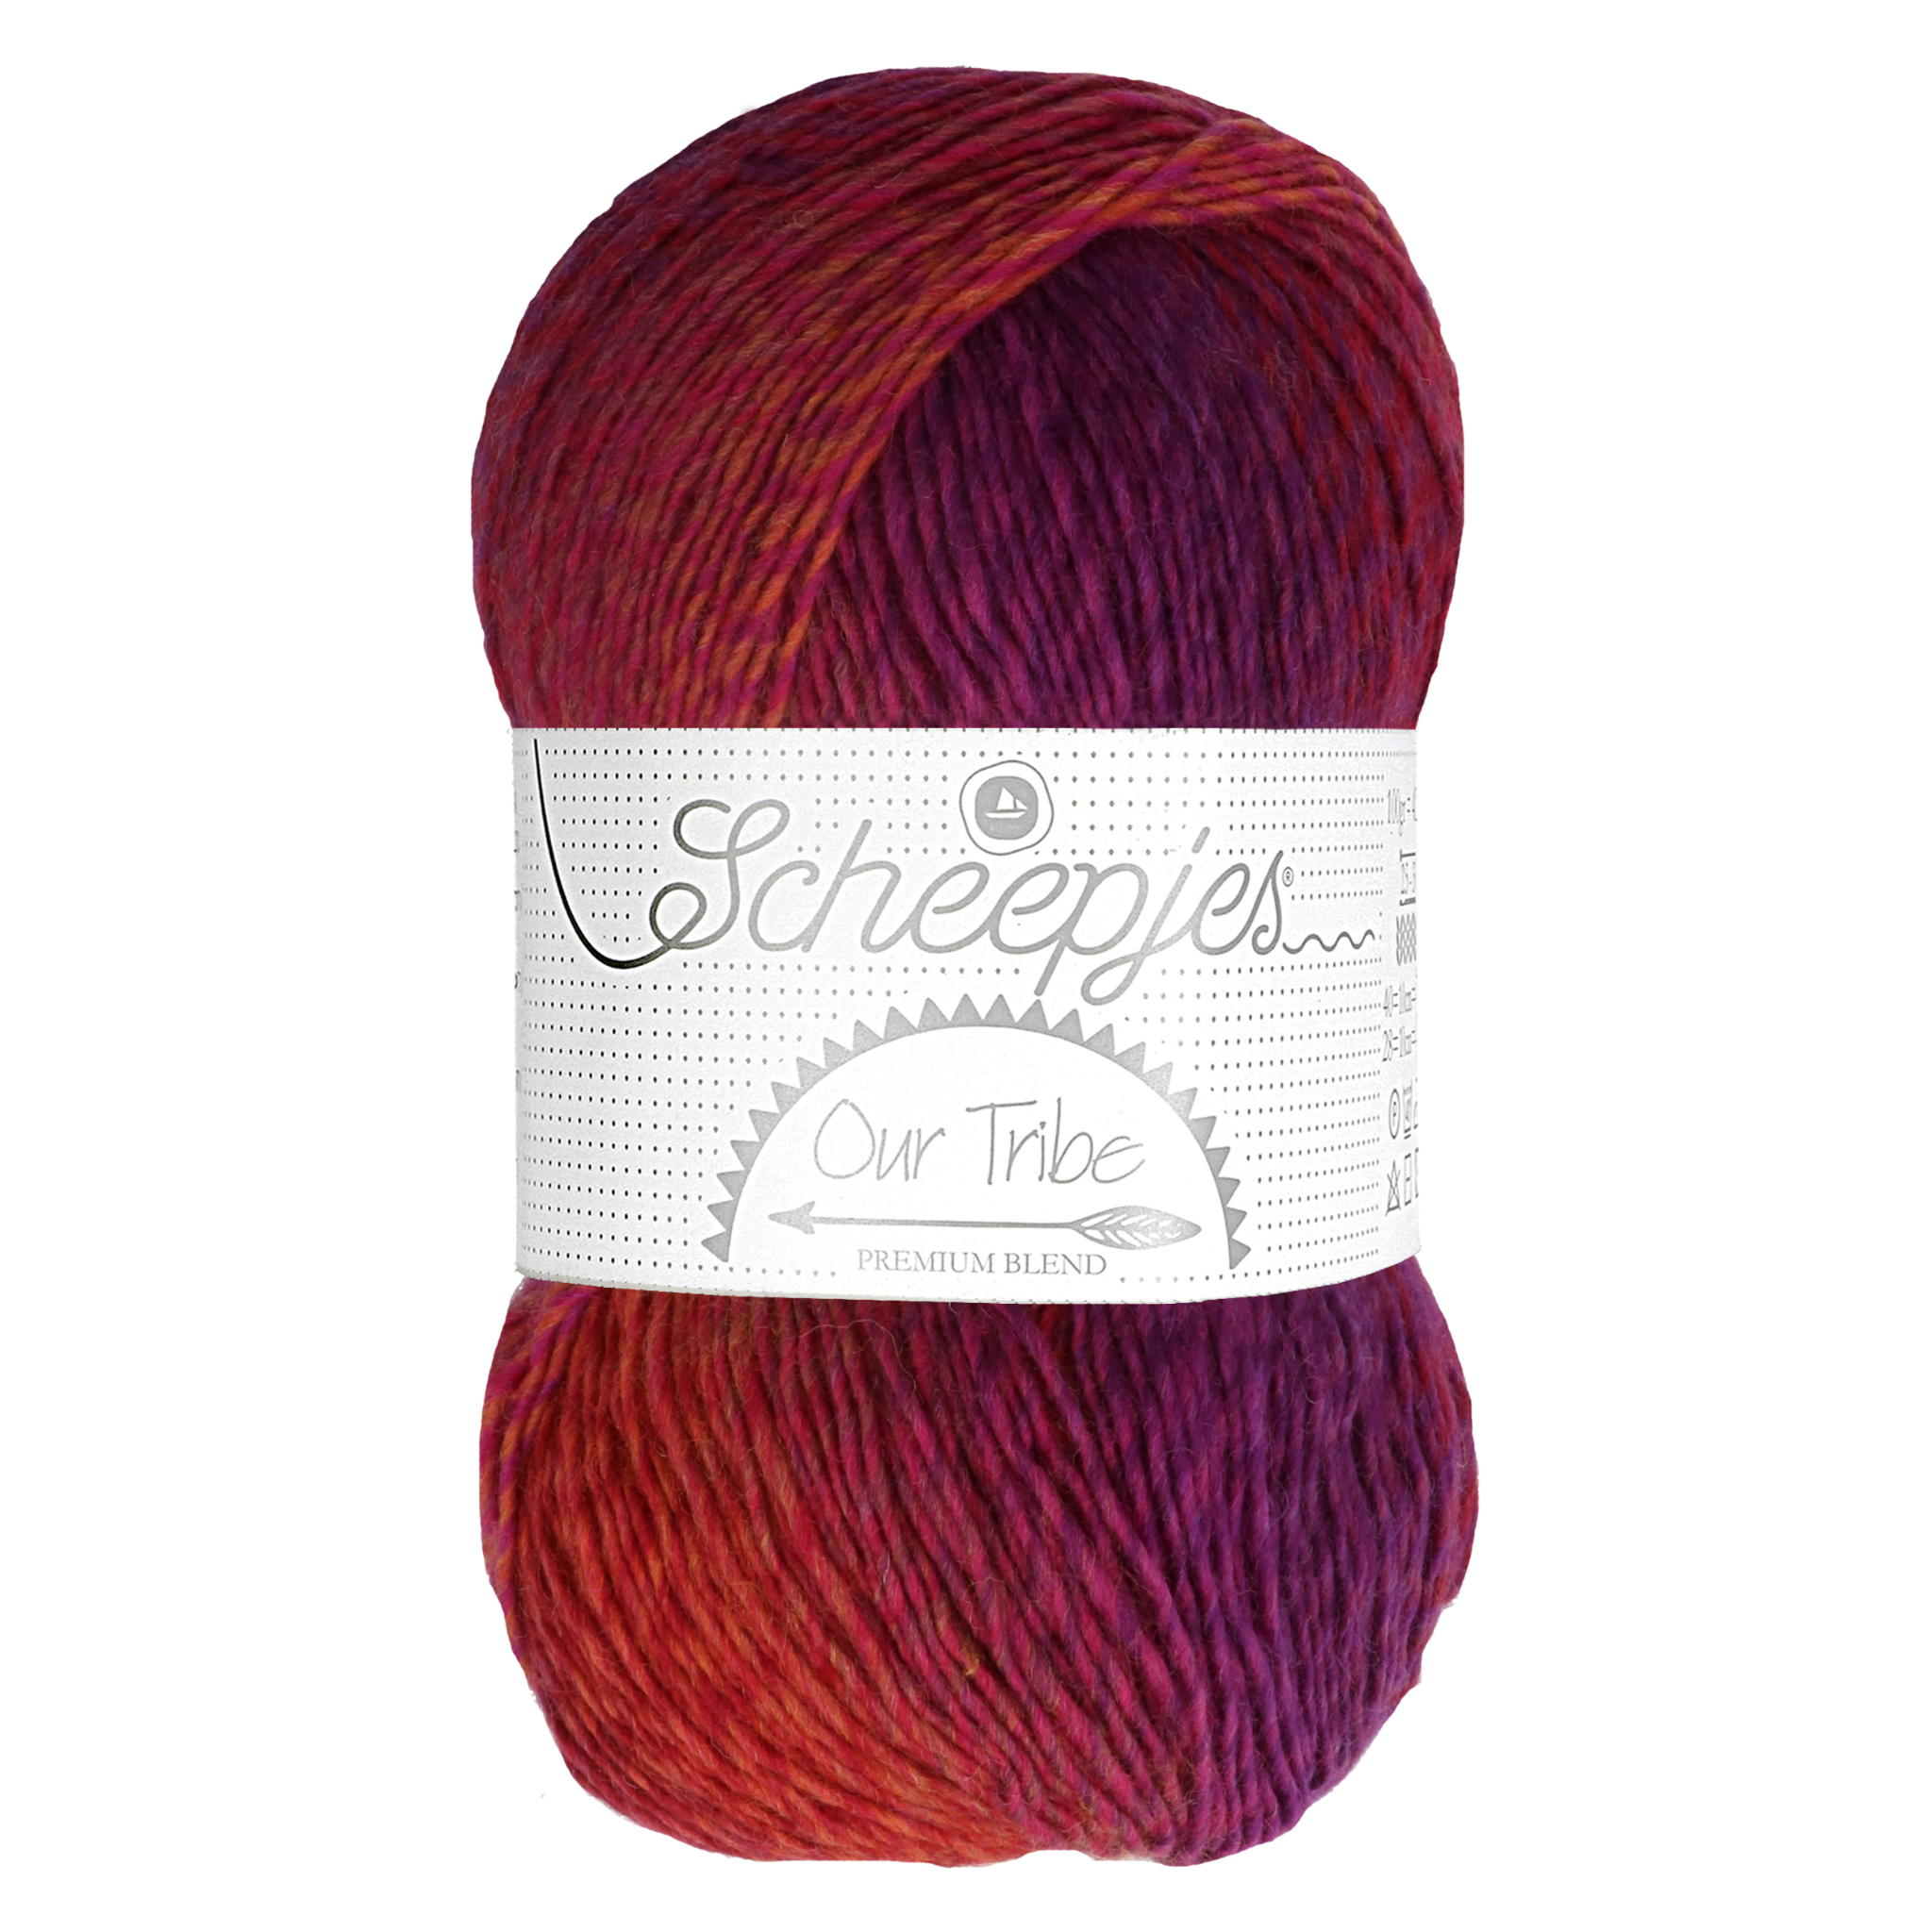 Scheepjes Our Tribe - Jellina Creations 971